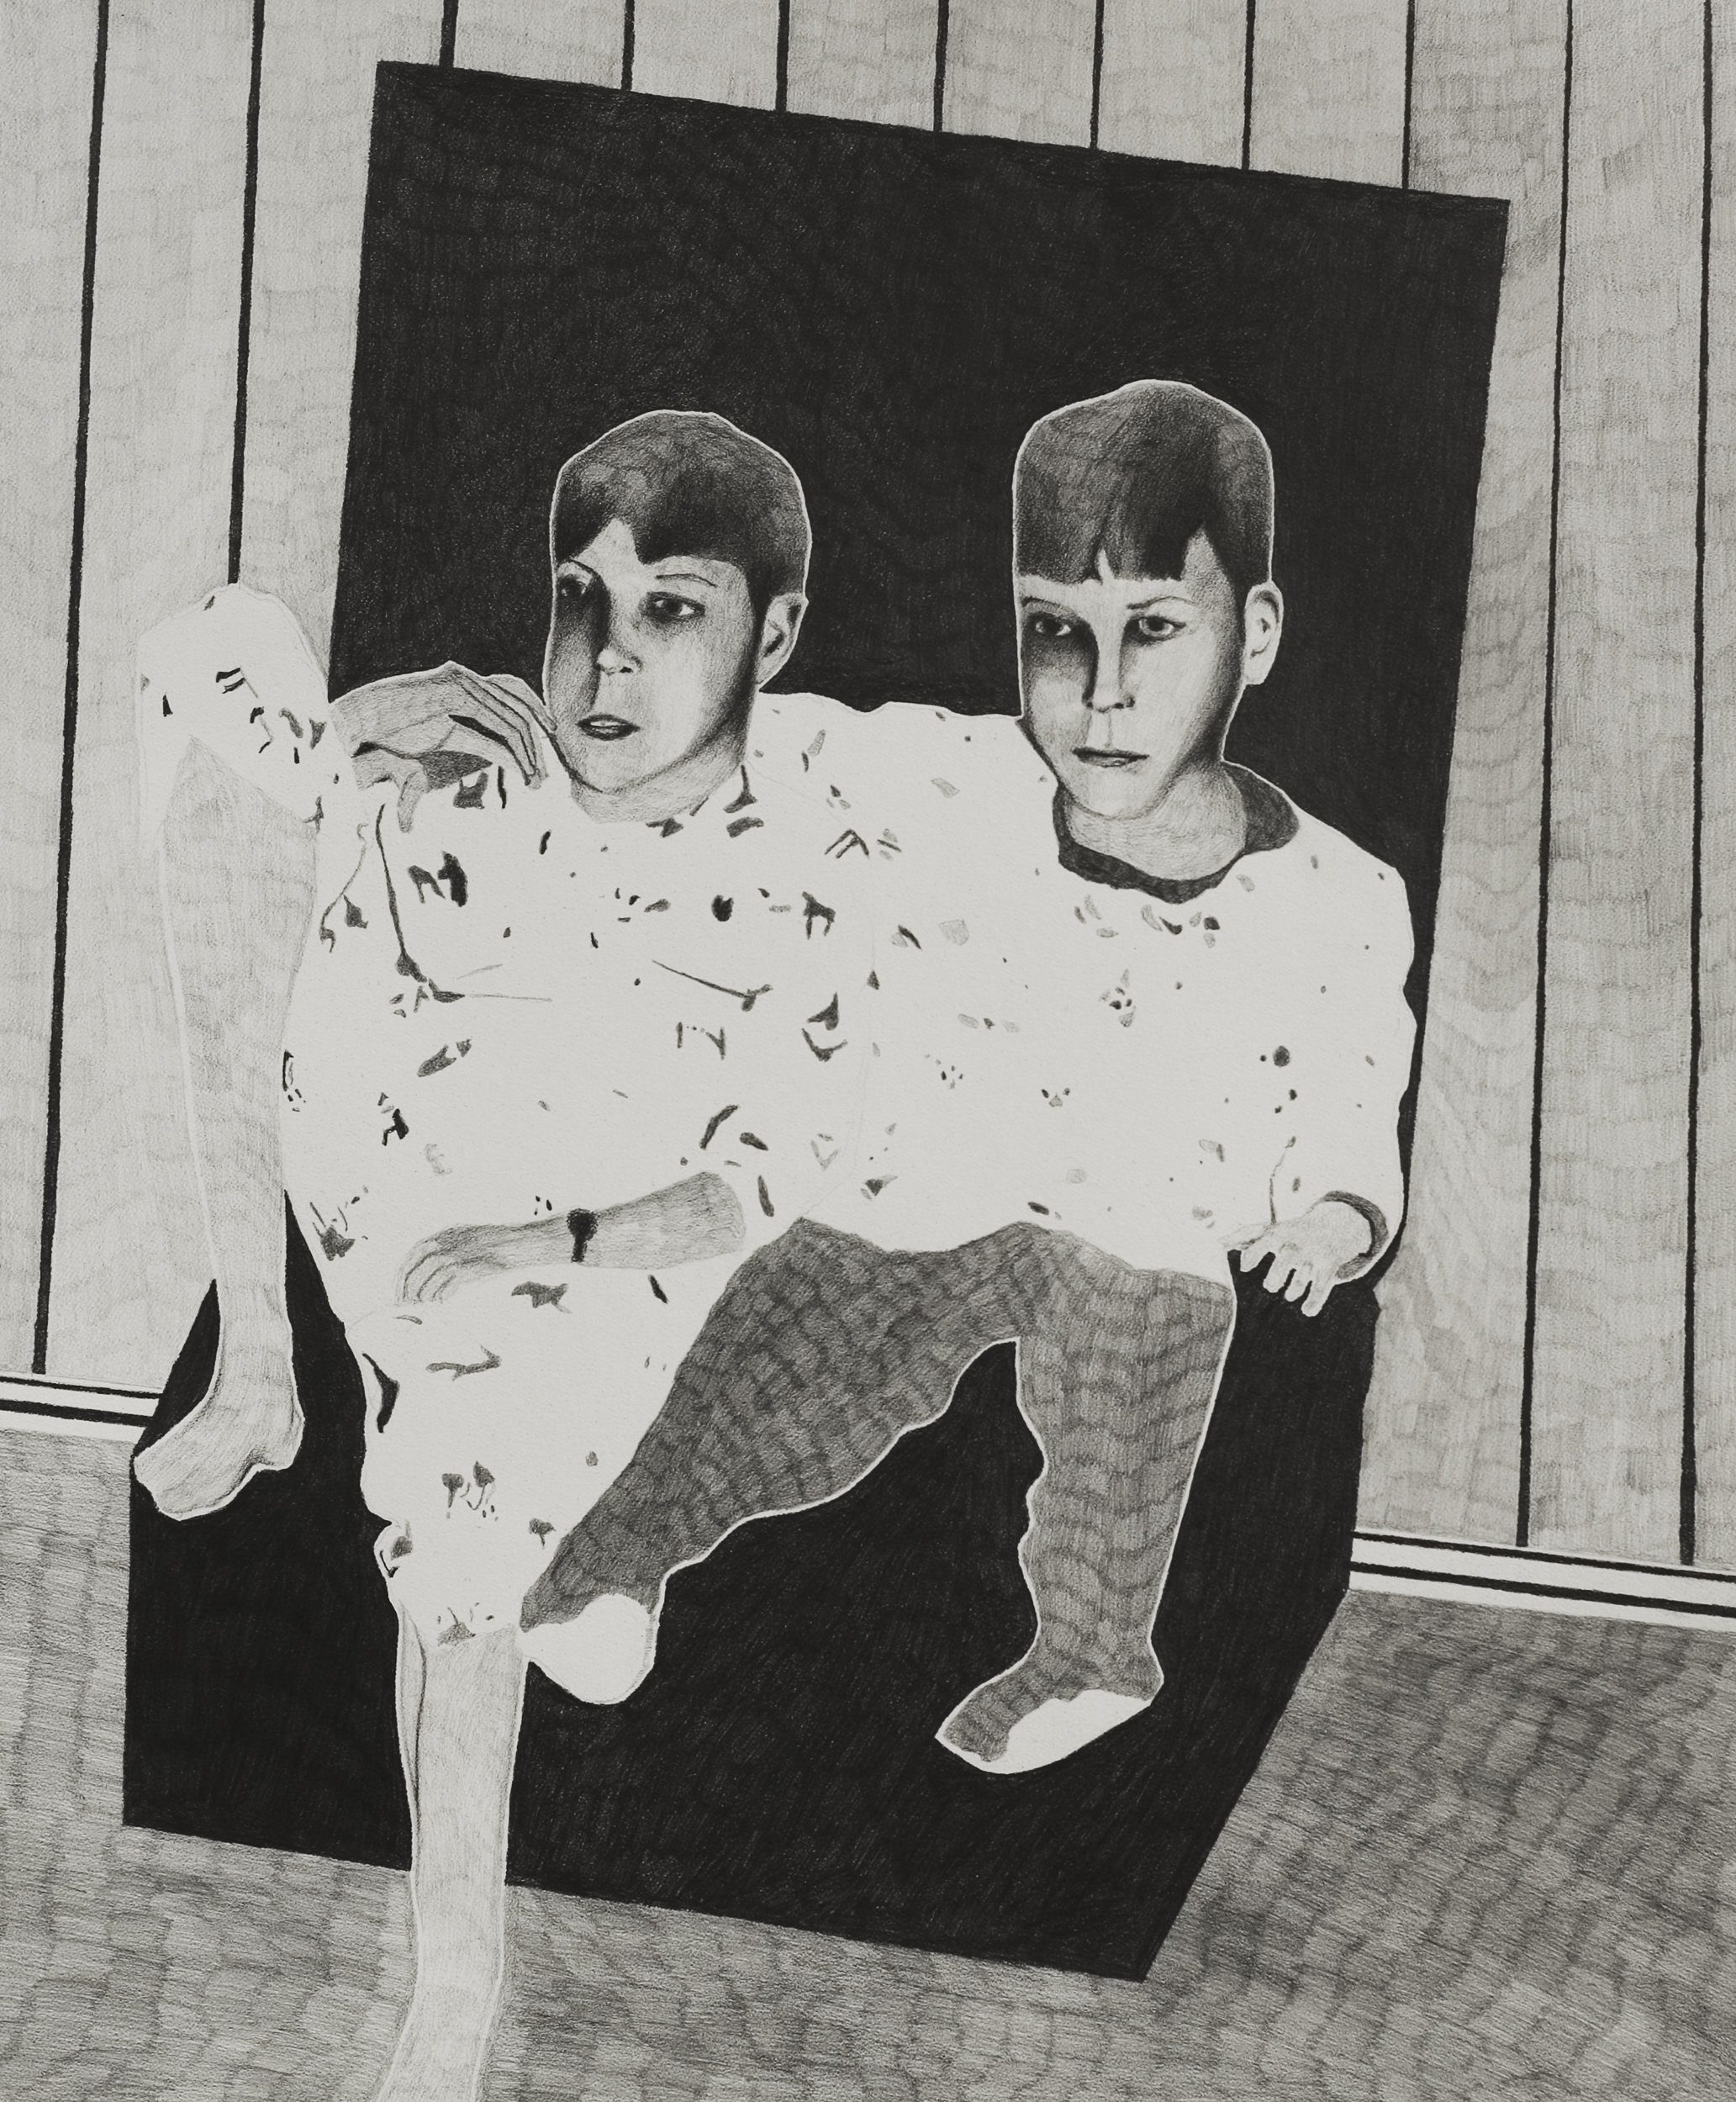 The Living Room / 2014 40x30cm / Pencil on Paper